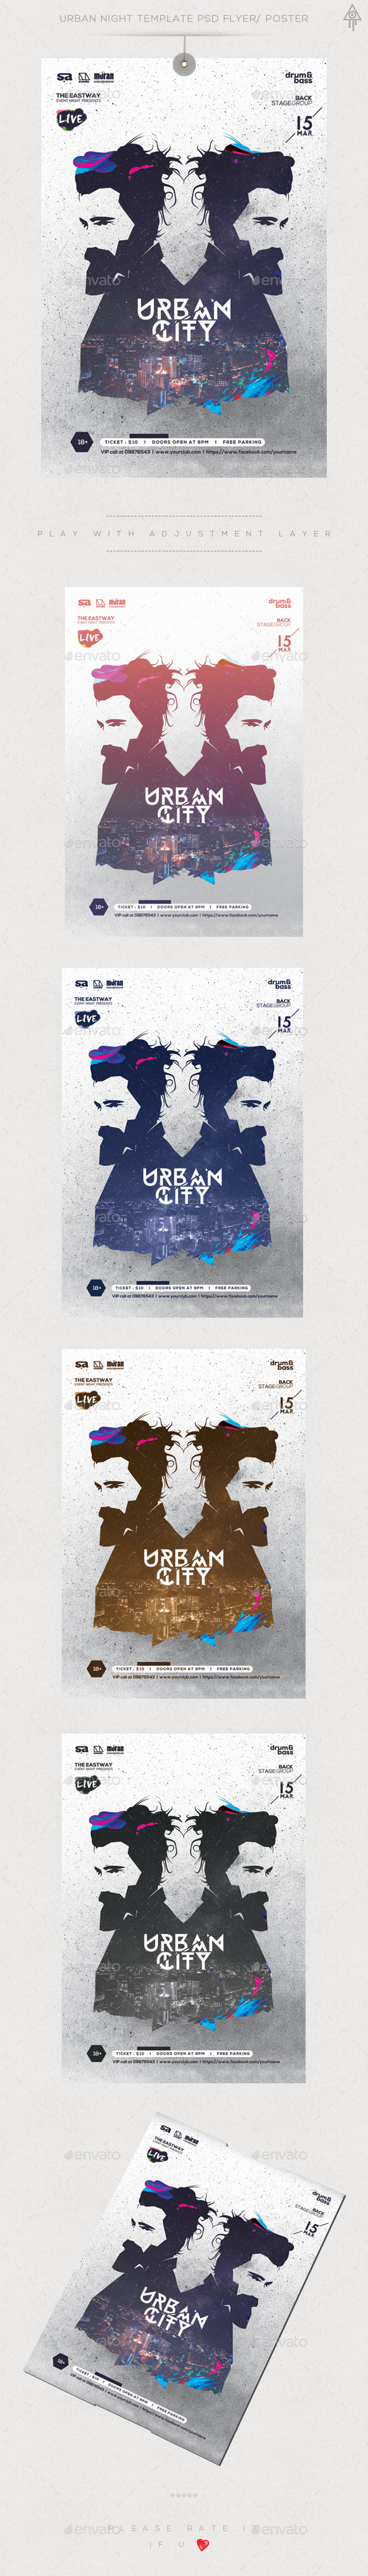 Urban CIty Guest Dj Club Flyer / Poster - Clubs & Parties Events